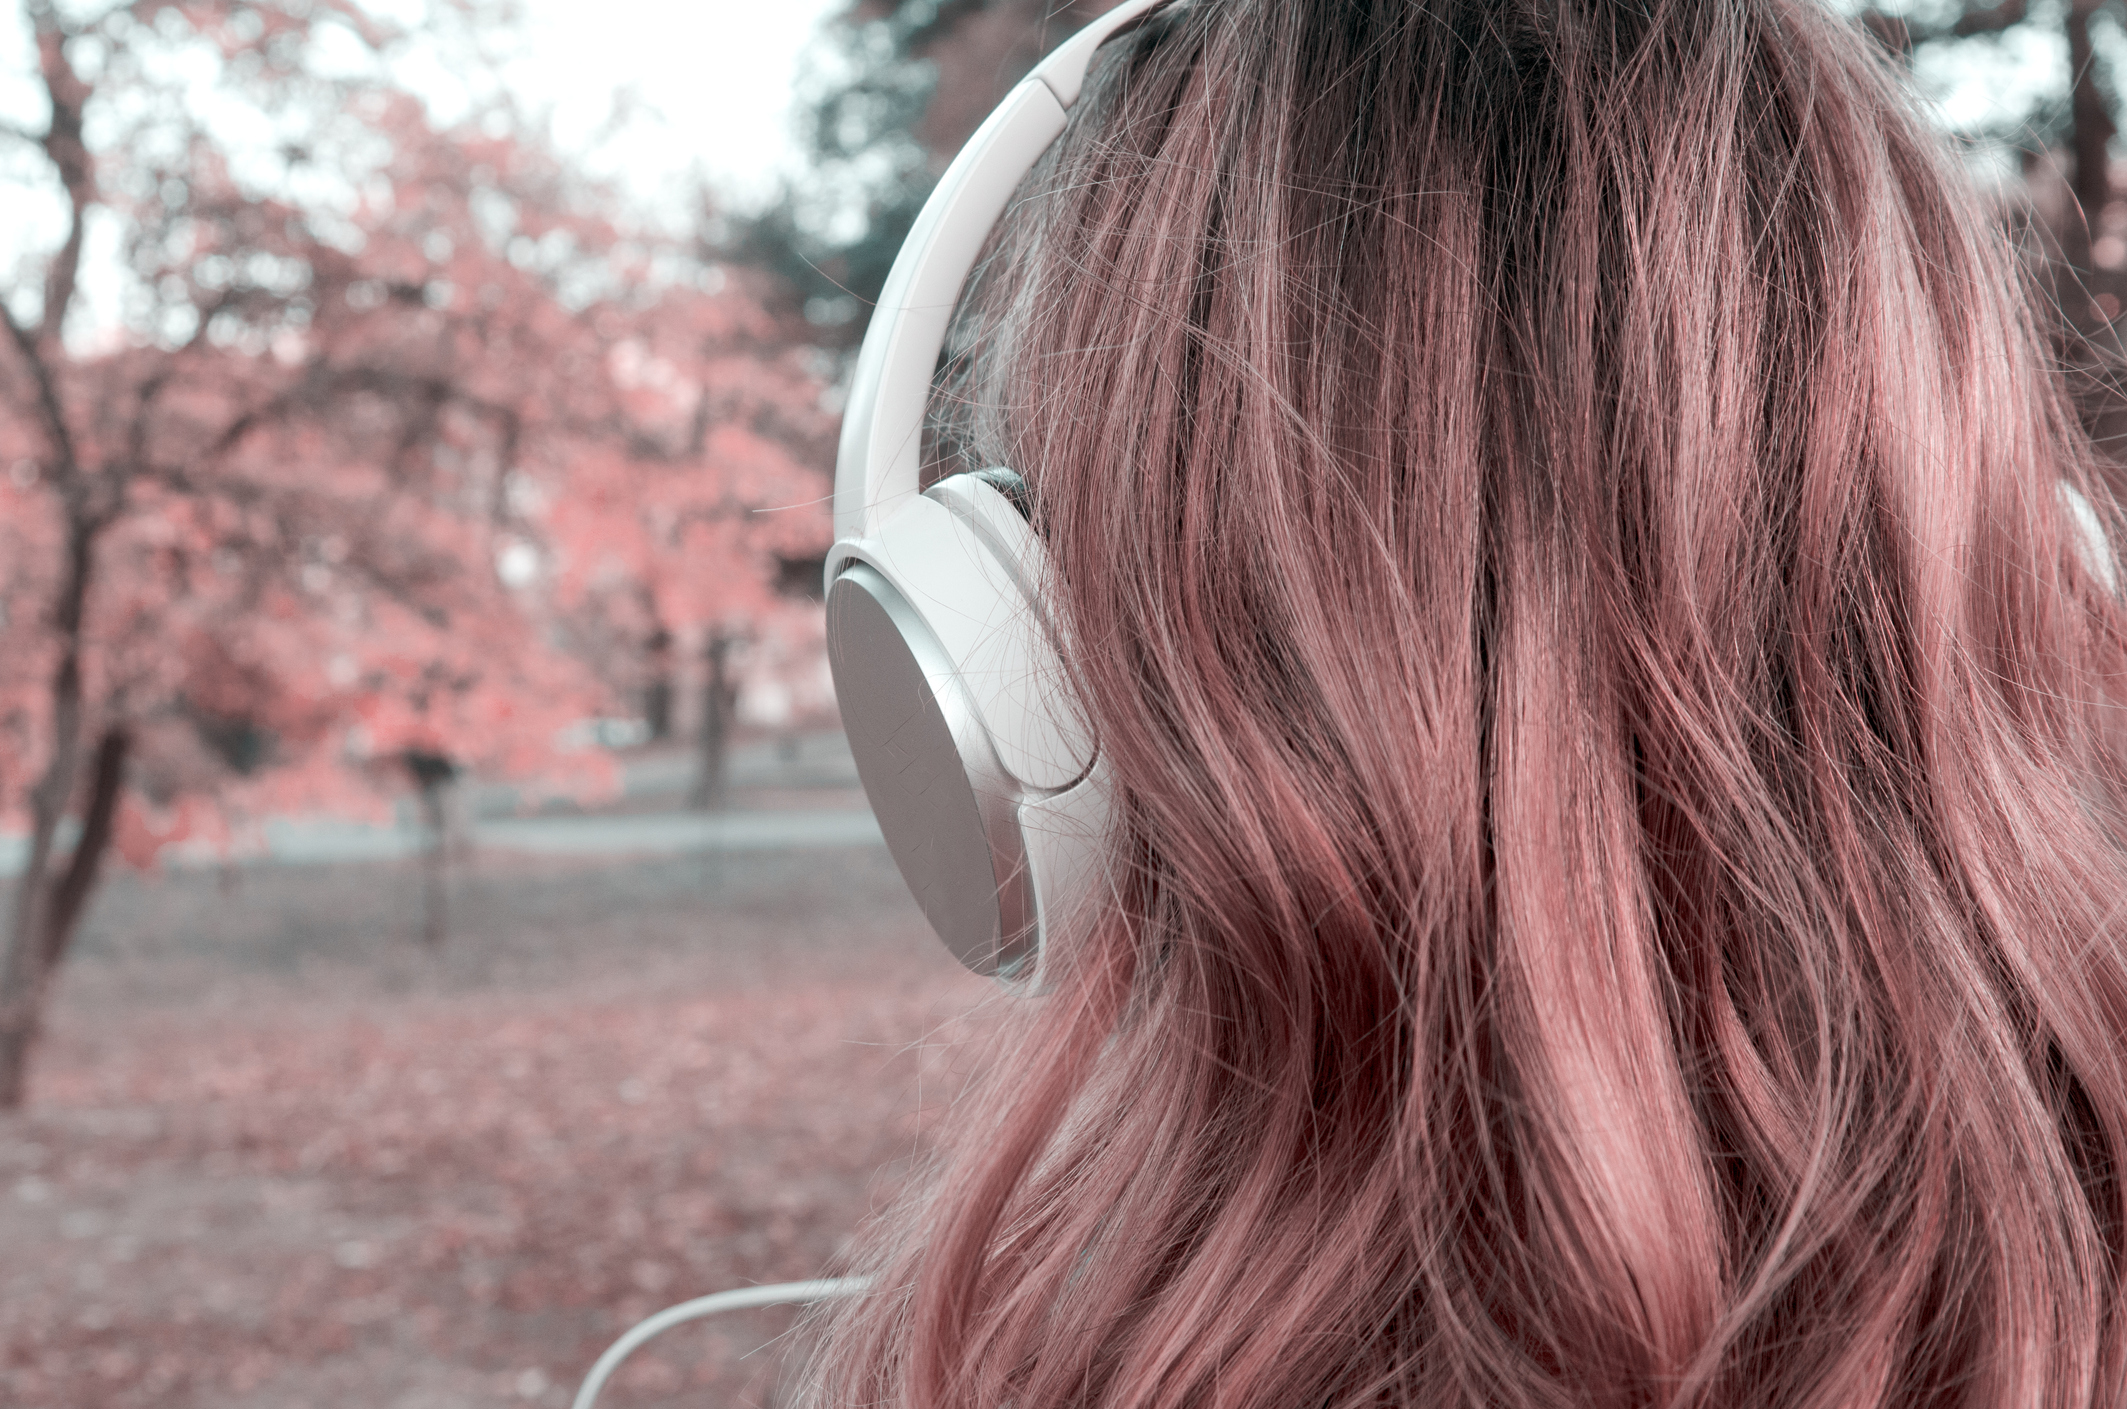 Back of woman head with big white earphones looking autumn tree.Close up hair and music earphone